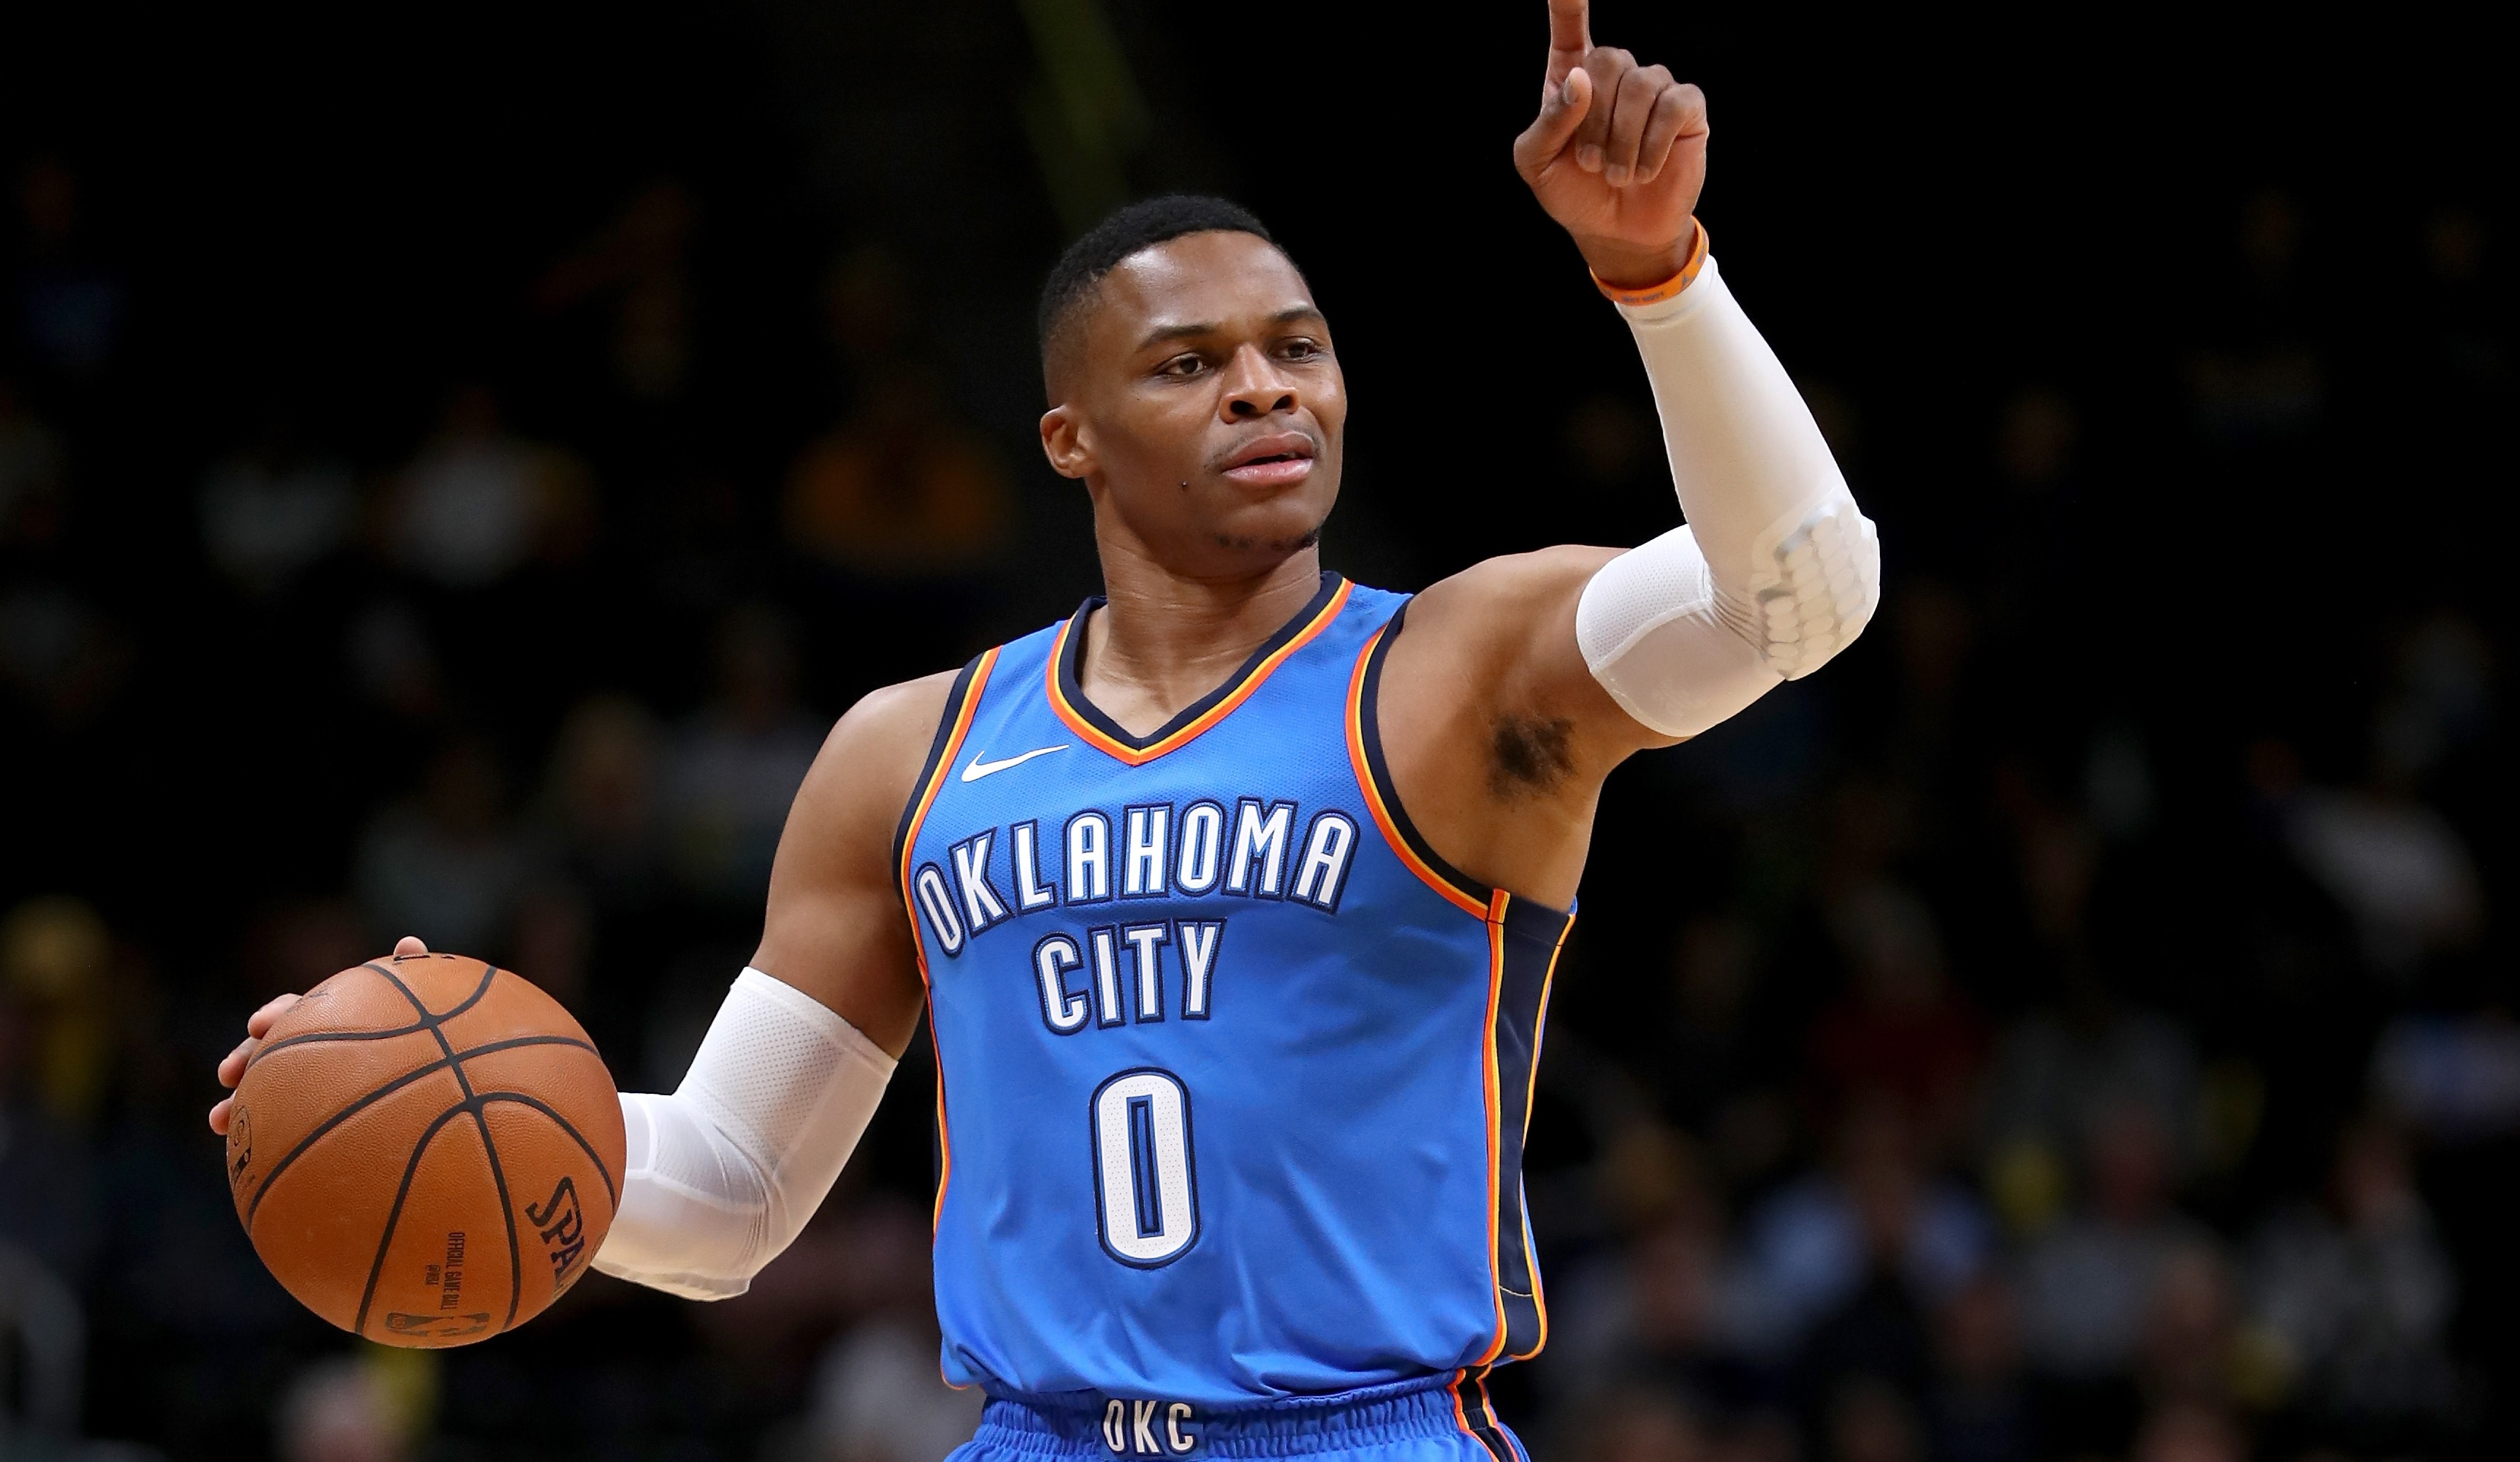 separation shoes f088e 1e5ca Russell Westbrook Wore Oven Mitts To The Game? Time To Get ...